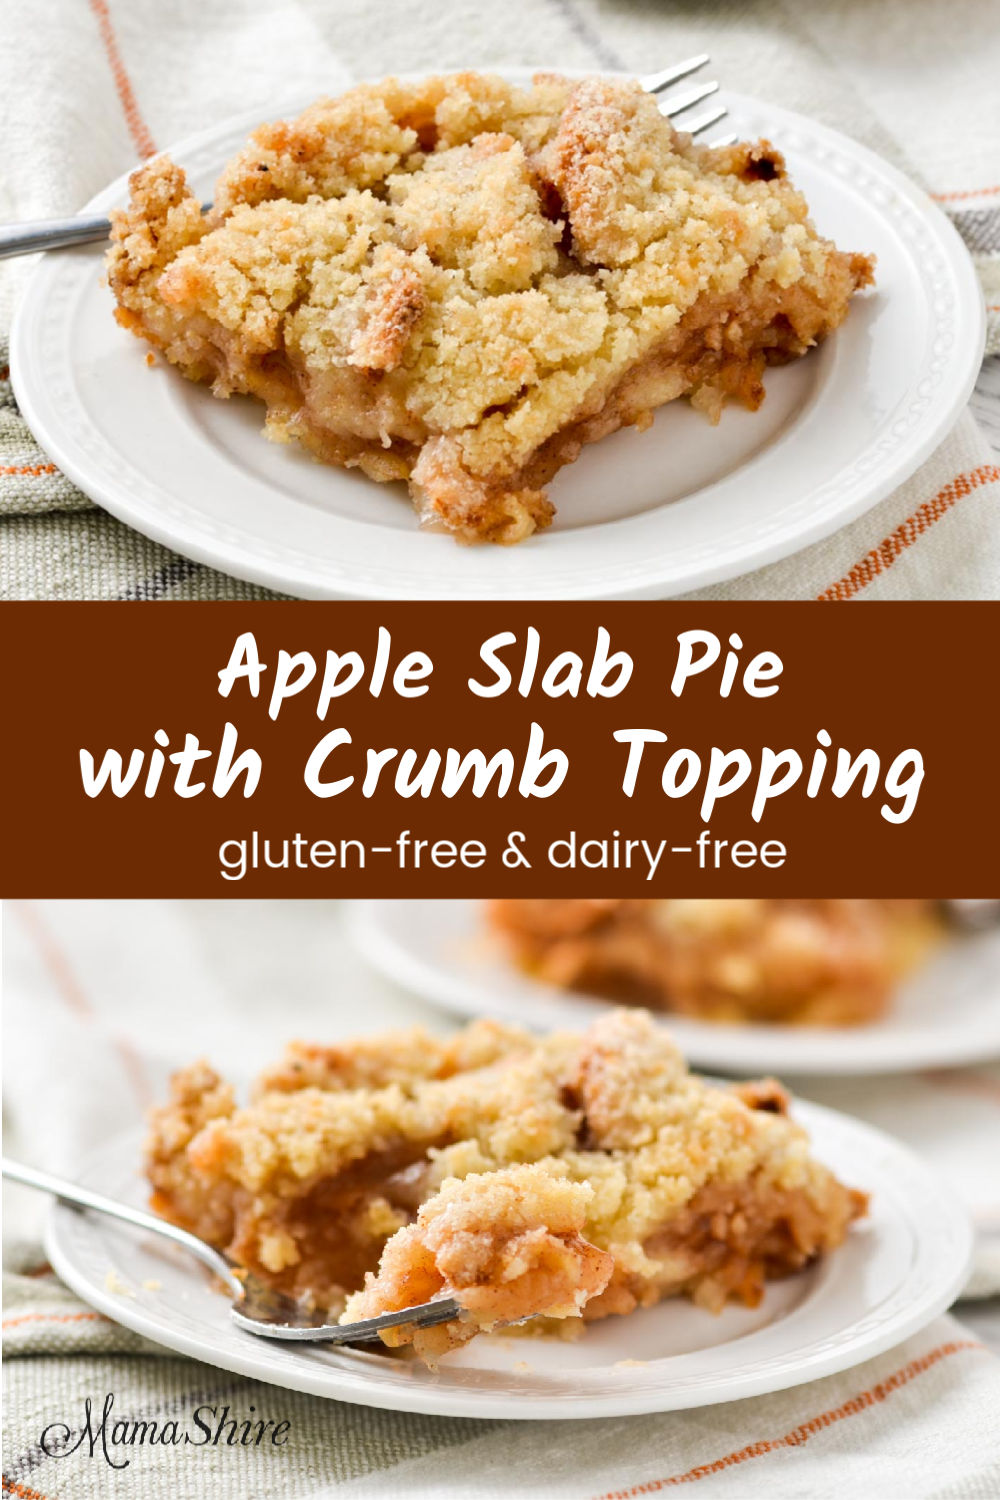 Apple slab pie with crumb topping.